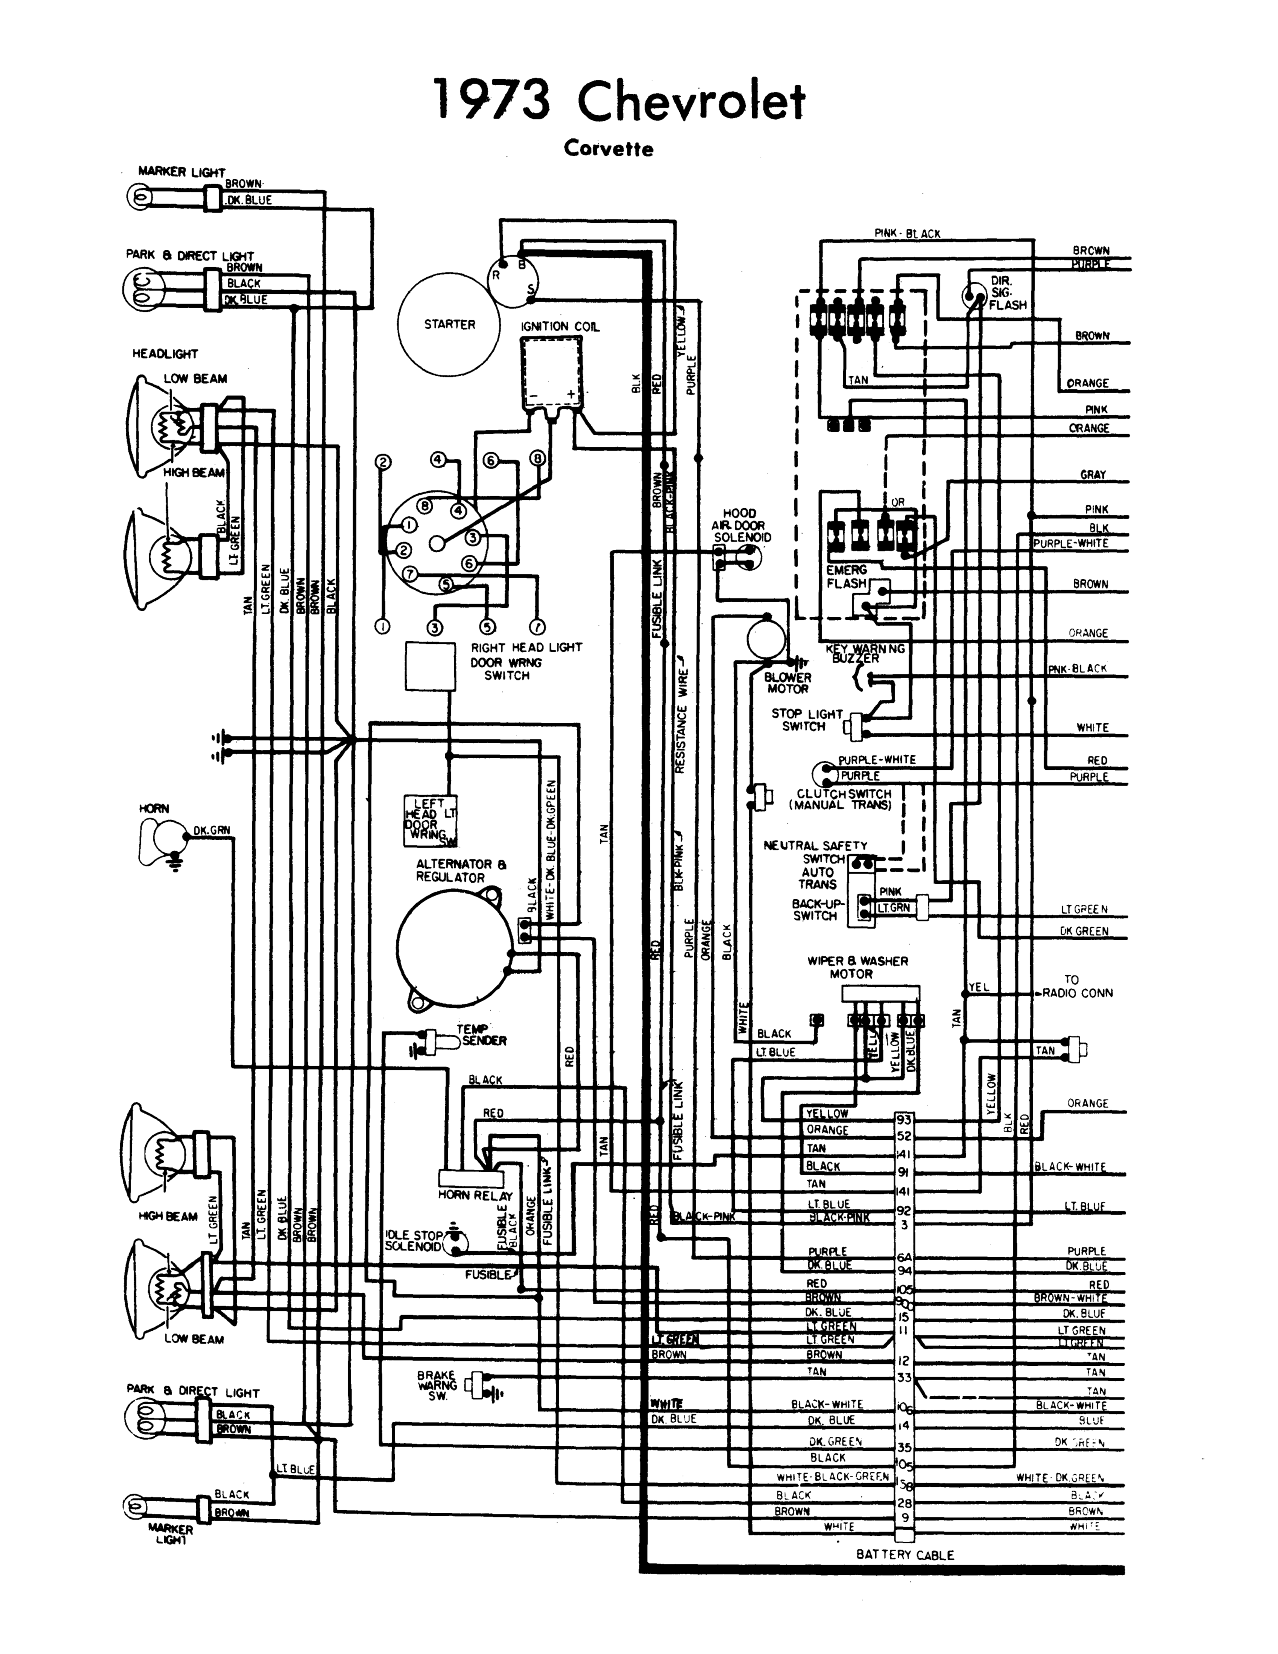 wiring diagram 1973 corvette chevy corvette 1973 wiring diagrams rh pinterest com 1976 corvette wiring diagrams corvette wiring diagrams free